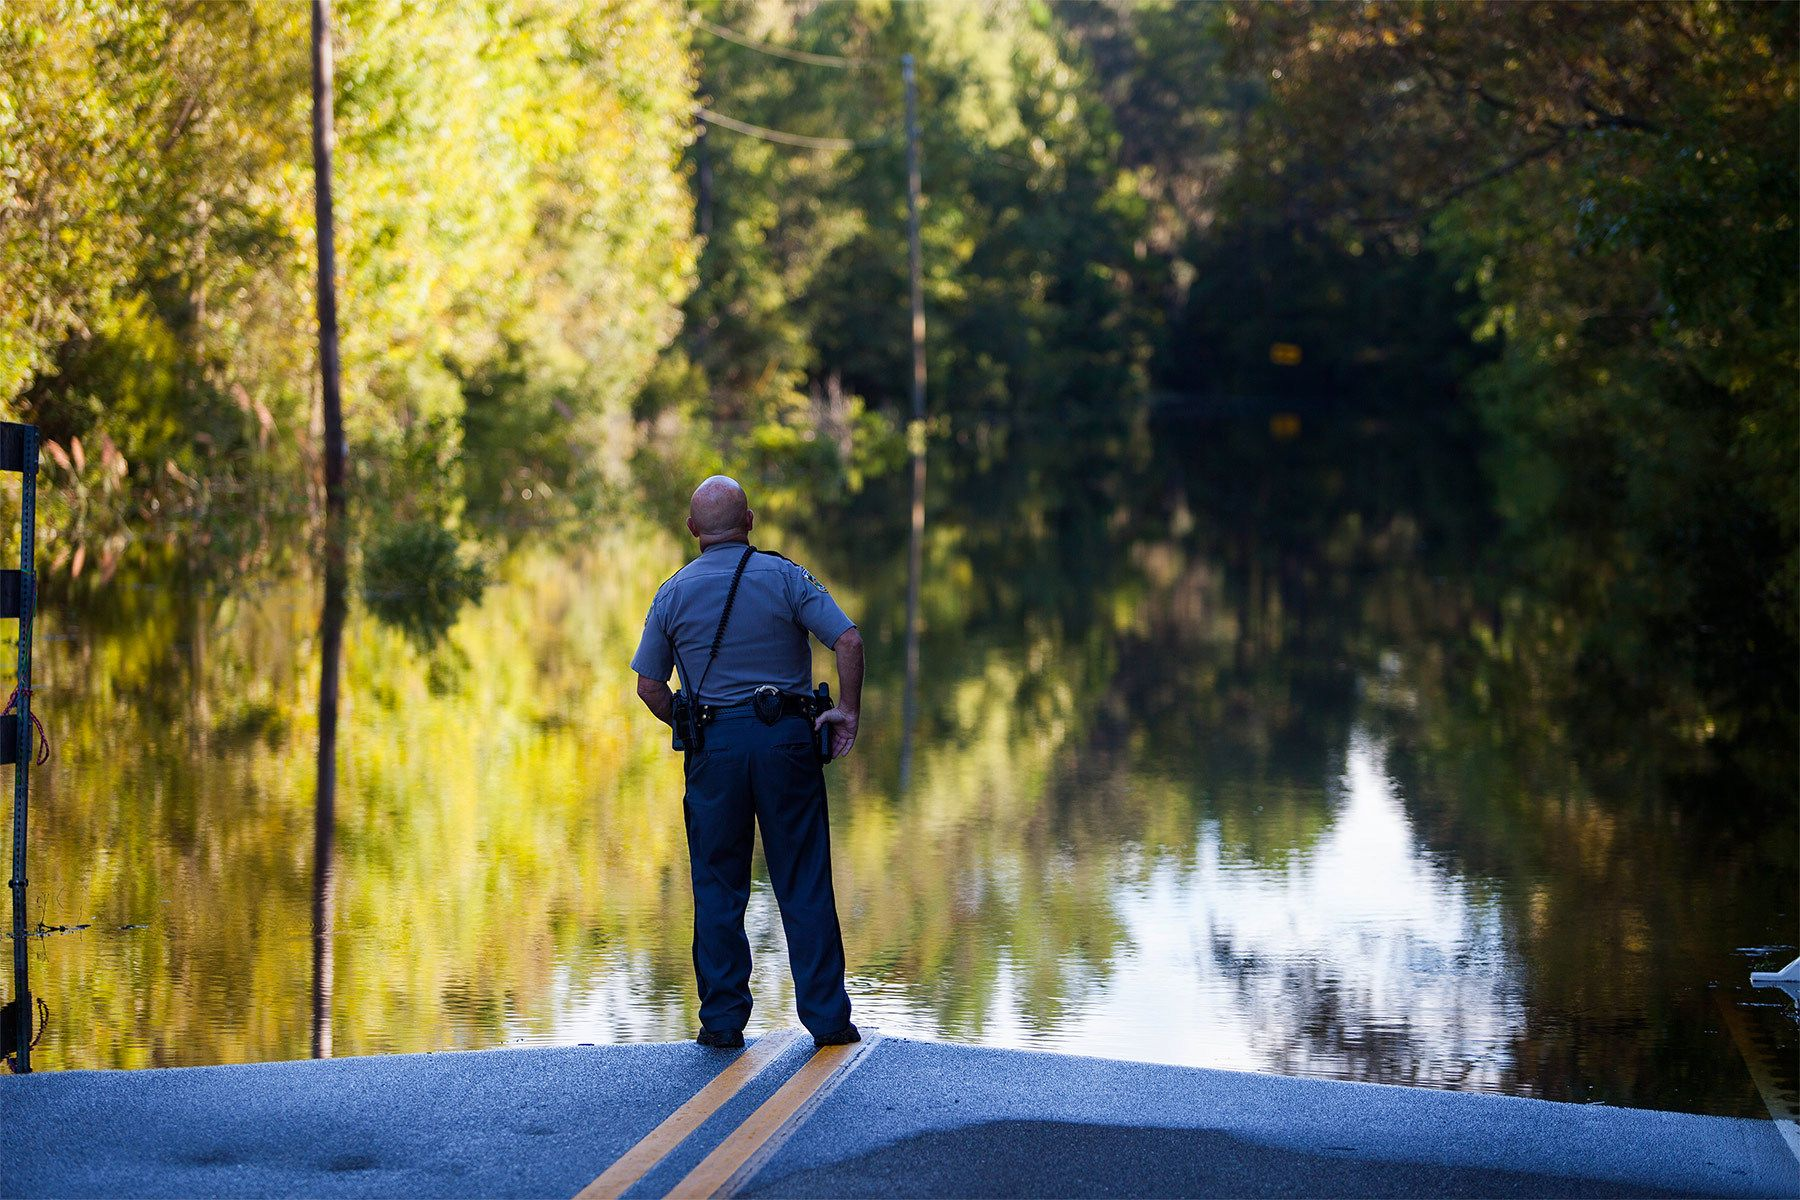 Horry County police officer Jeff Helfinstine patrols the edge of flood waters along Lee's Landing Circle in Conway, South Carolina October 7, 2015. Rescuers searched early Wednesday for two people missing in floodwaters in South Carolina, while authorities urged residents in hundreds of homes to seek higher ground. REUTERS/Randall Hill